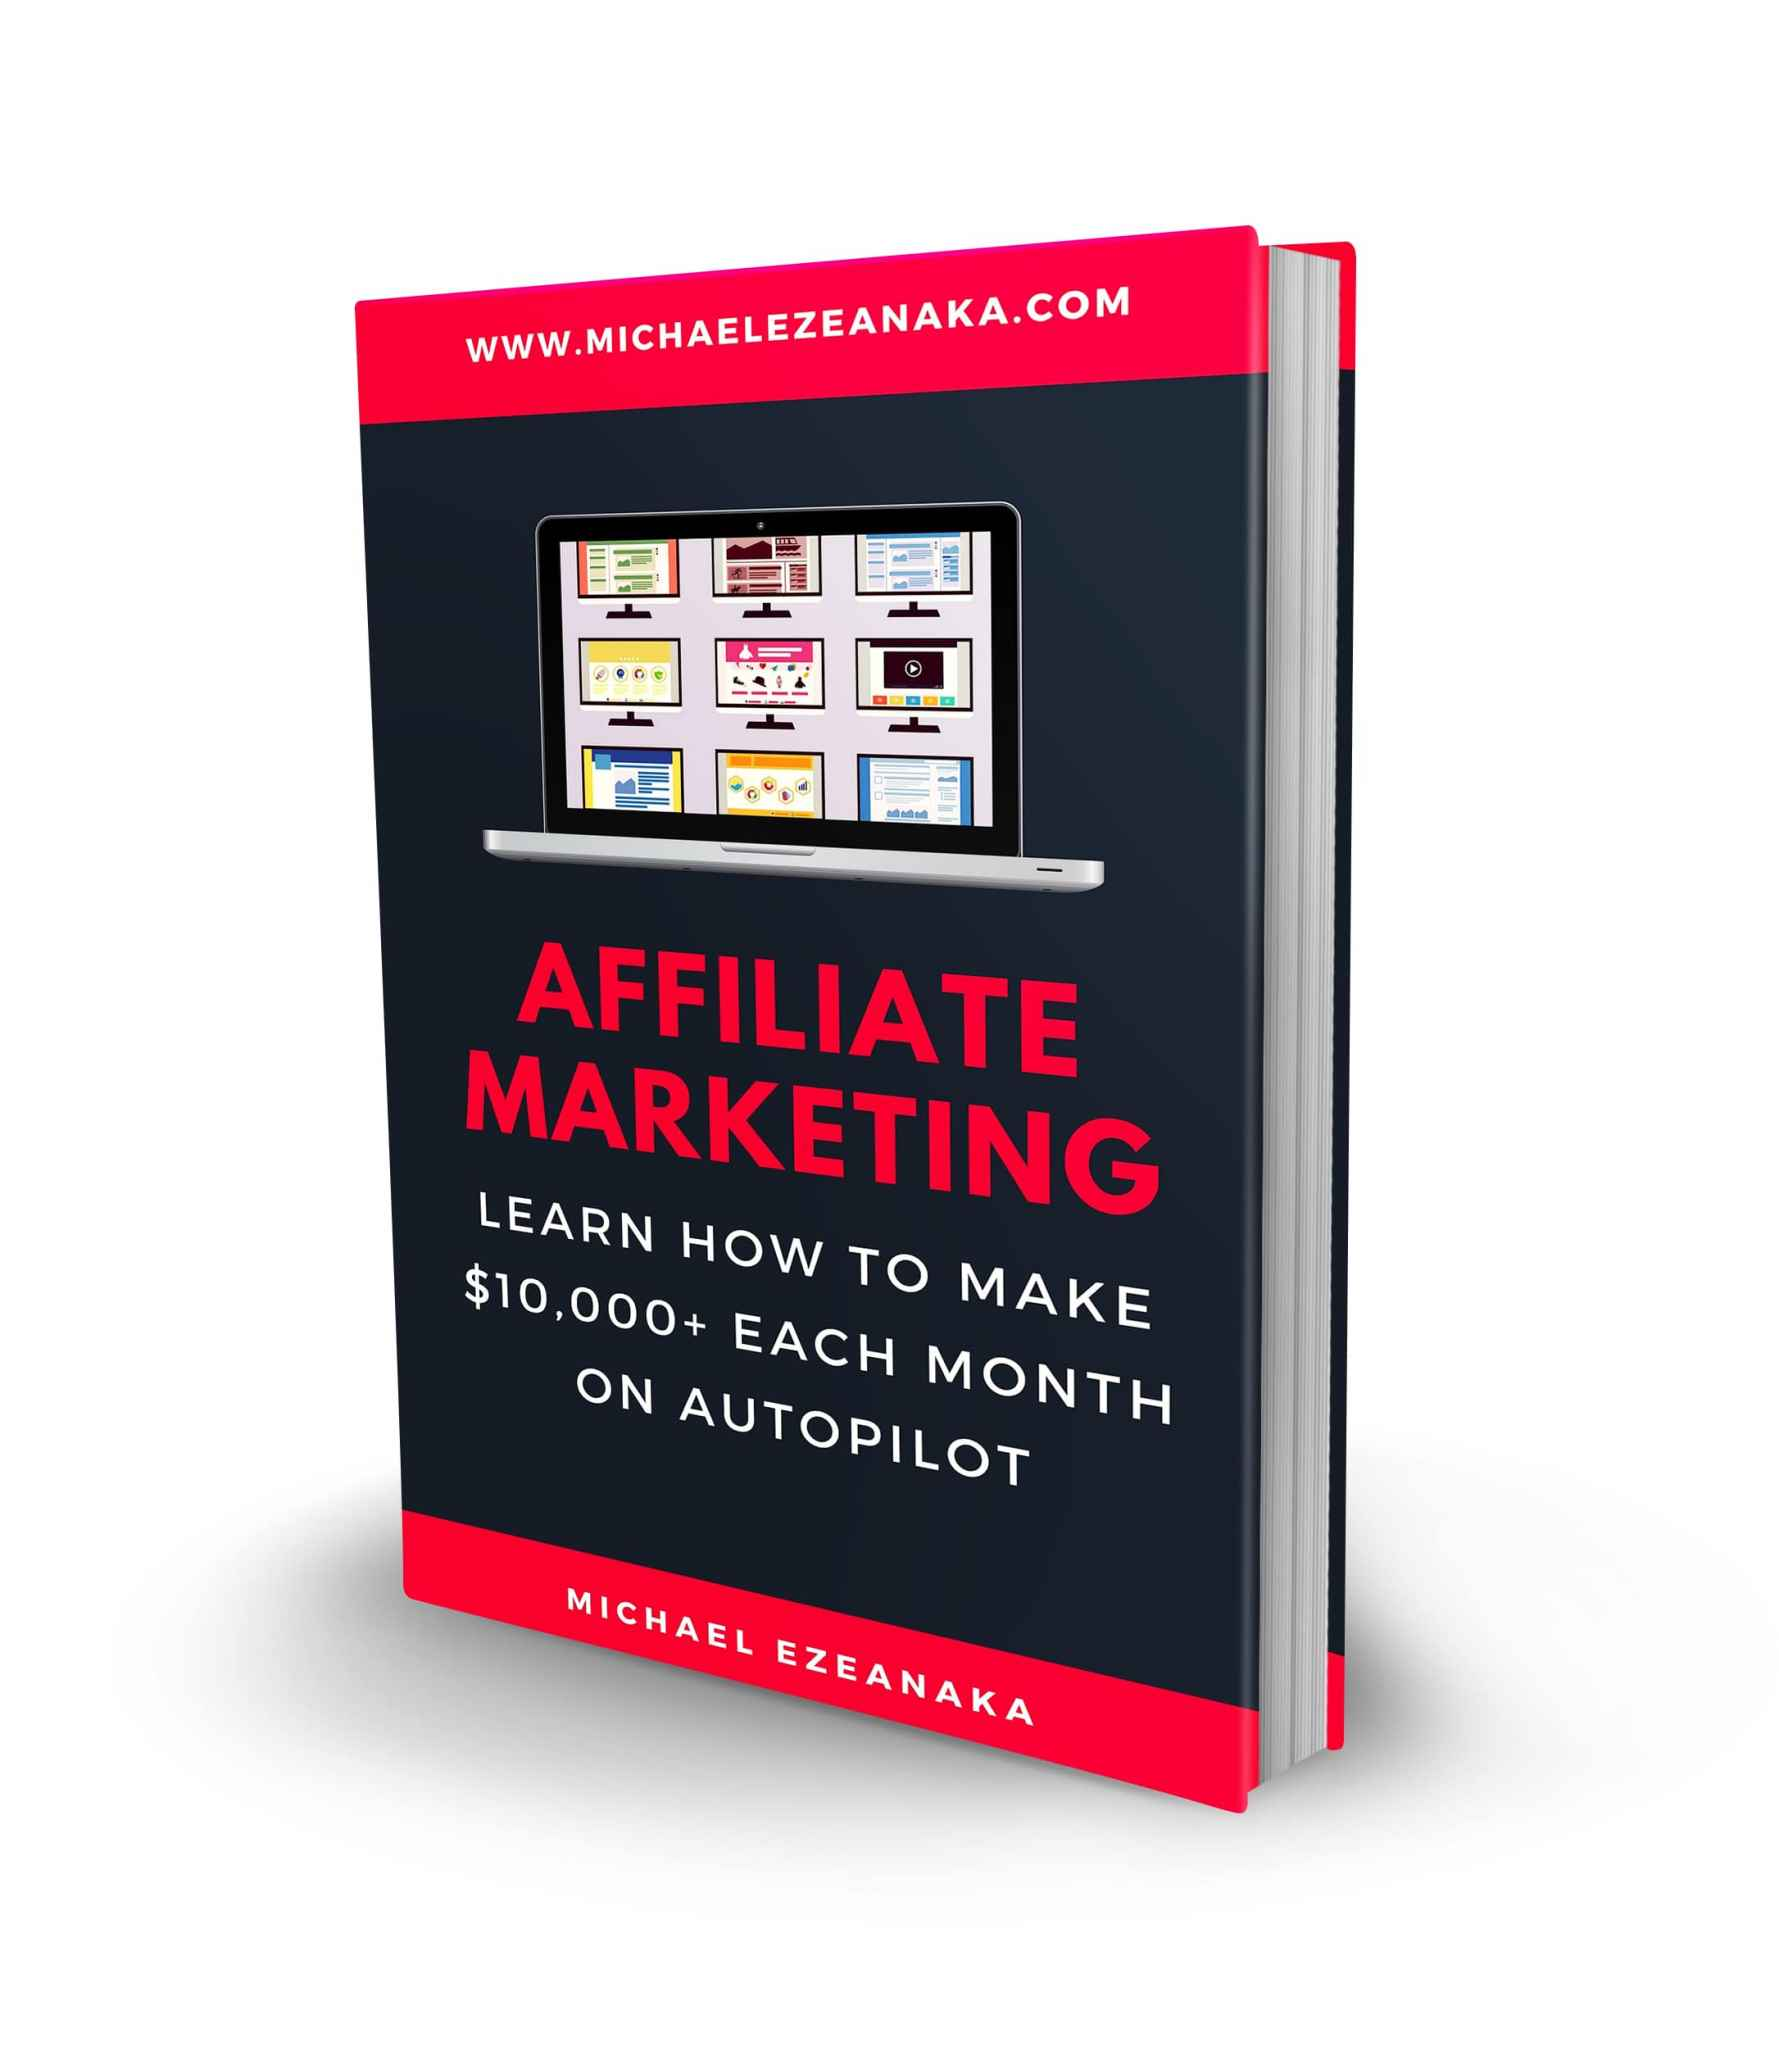 Learn How to Make $10,000+ Each Month on Autopilot